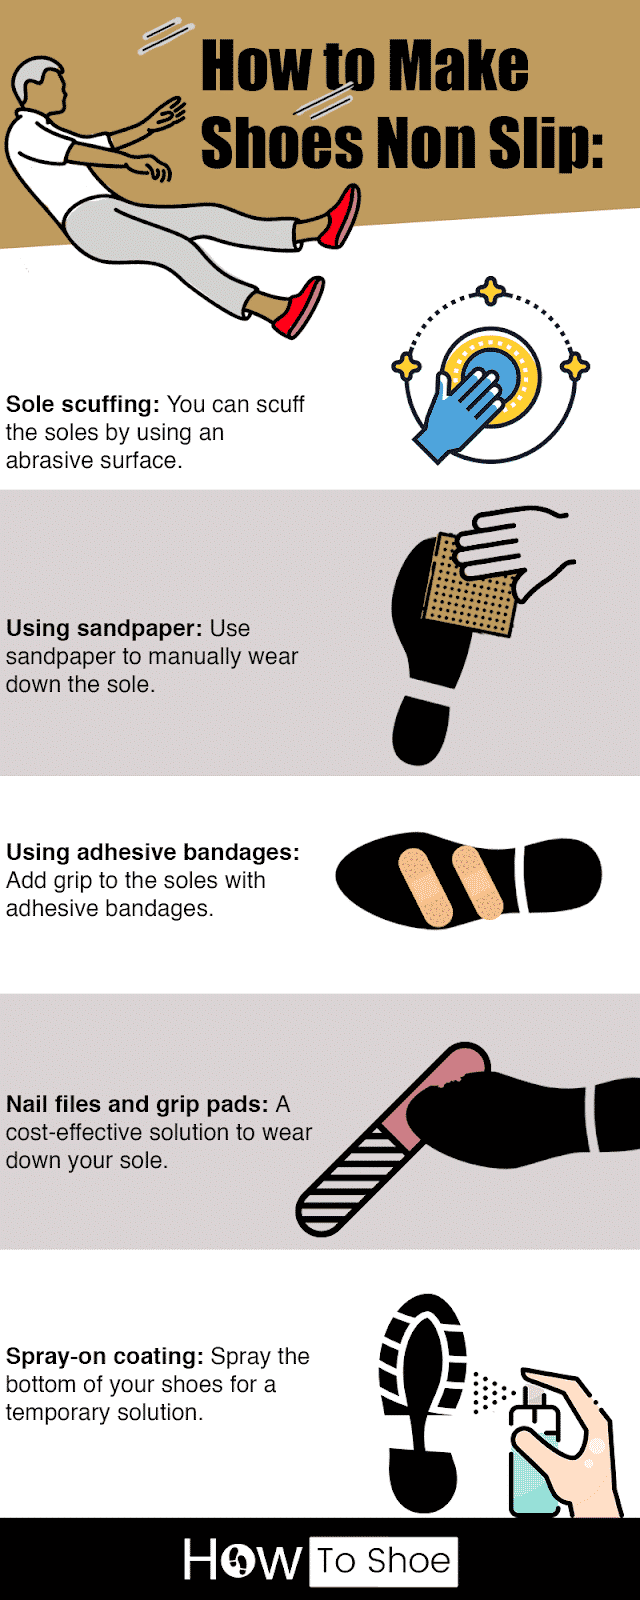 How To Make Shoes Non Slip